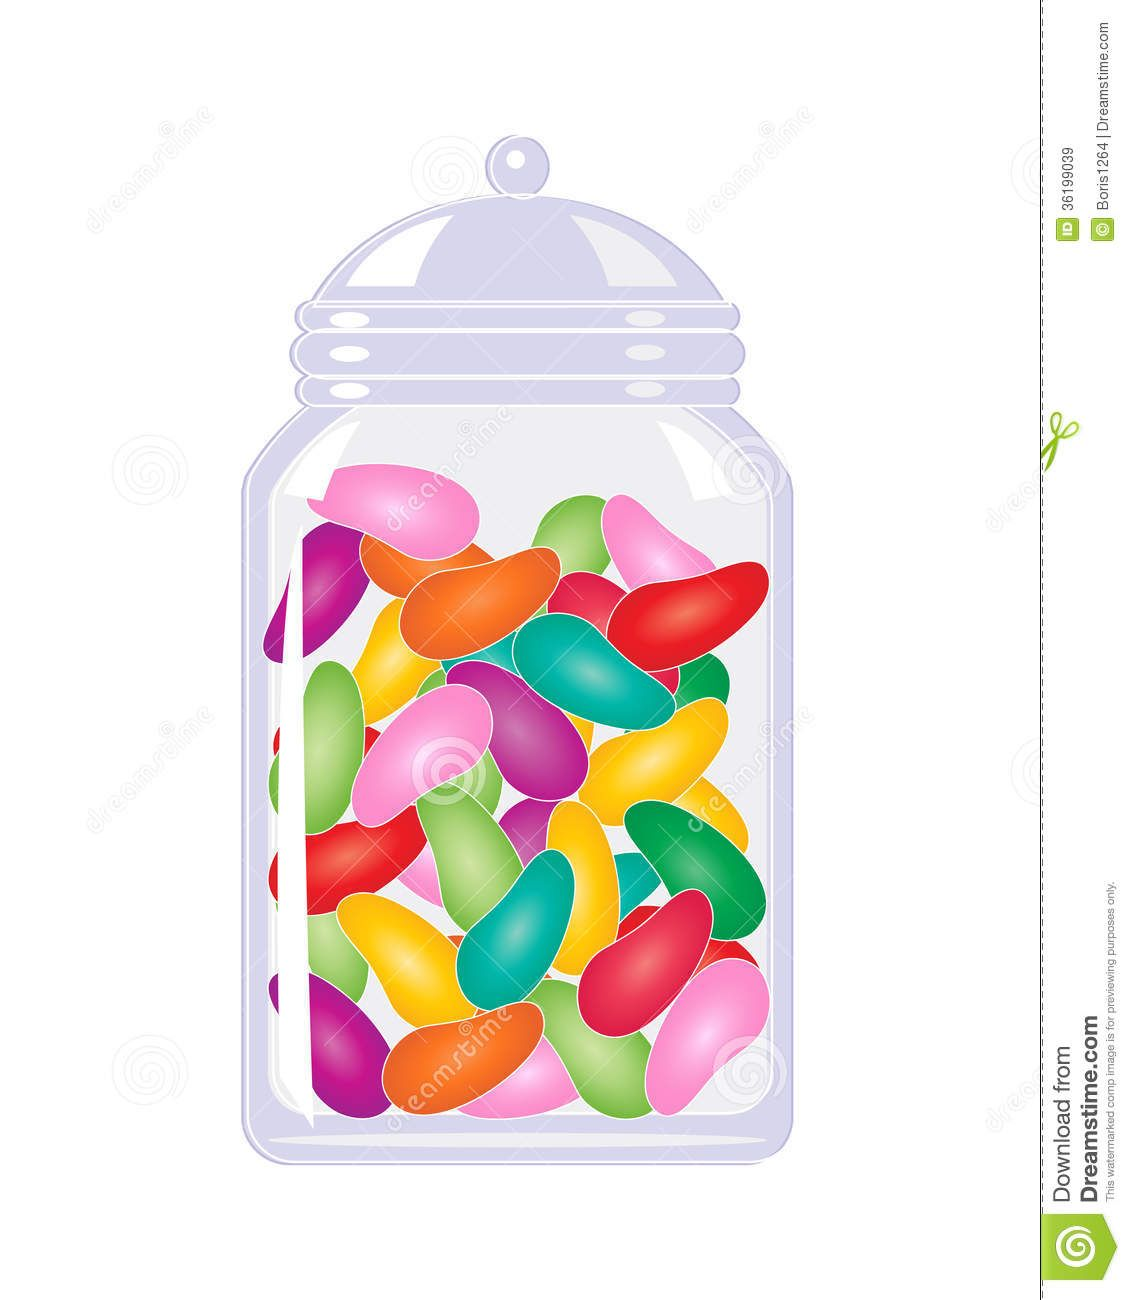 Free Jelly Bean Clipart, Download Free Clip Art, Free Clip ... |Jelly Bean Jar Clipart